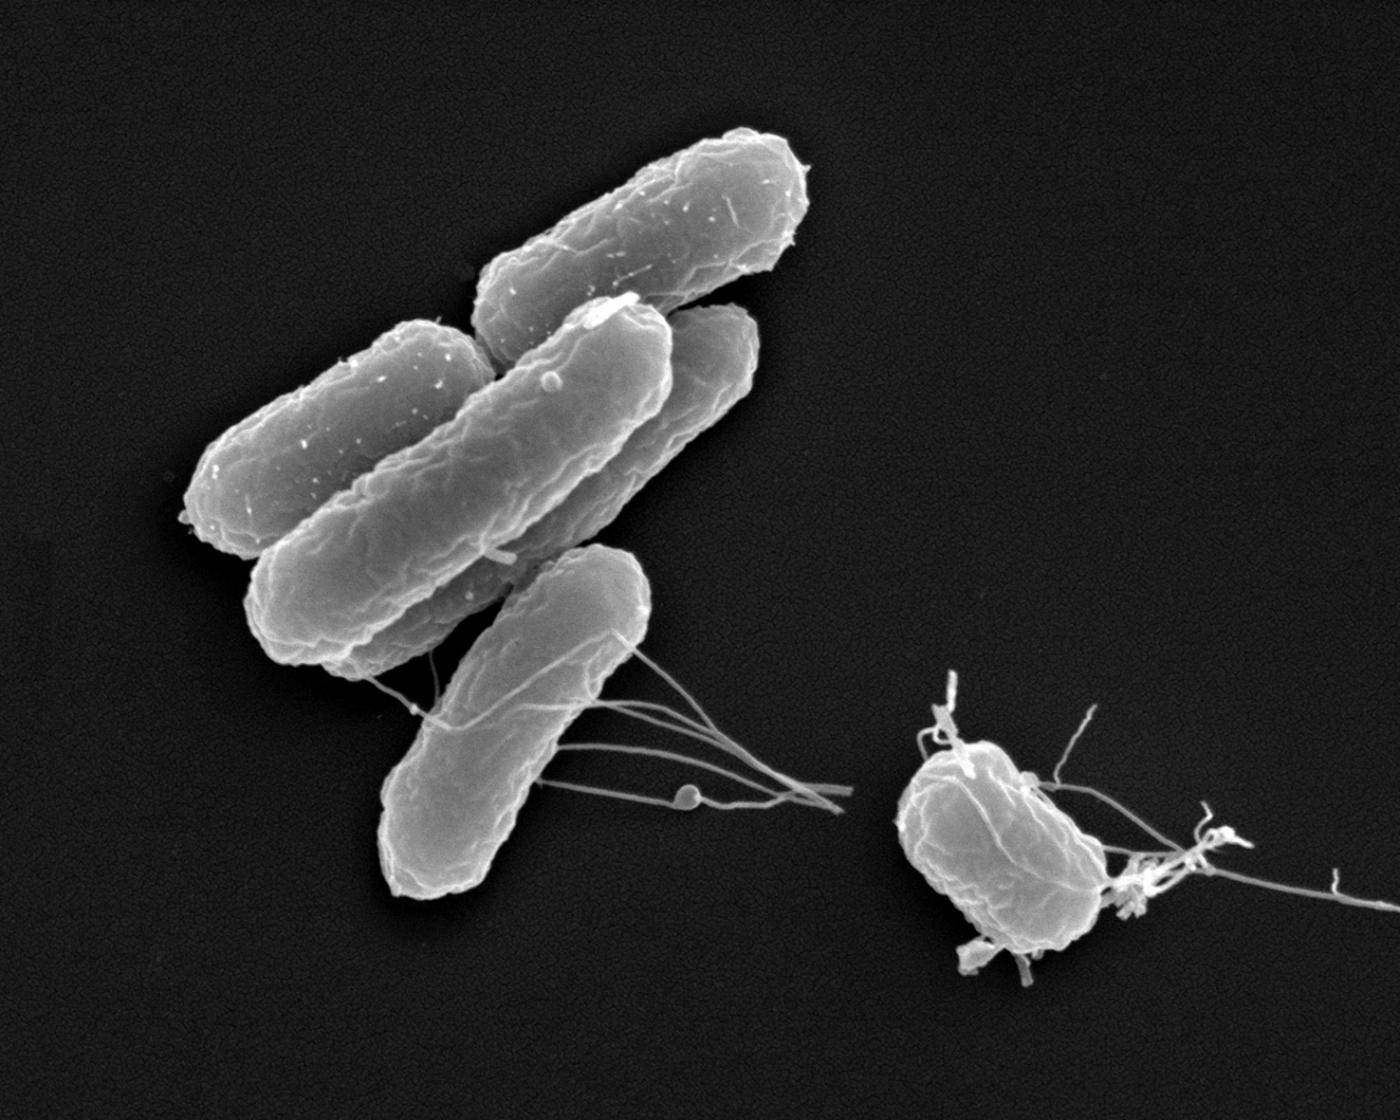 Salmonella is a genus of rodshaped bacillus Gramnegative bacteria of the family Enterobacteriaceae The two species of Salmonella are Salmonella enterica and